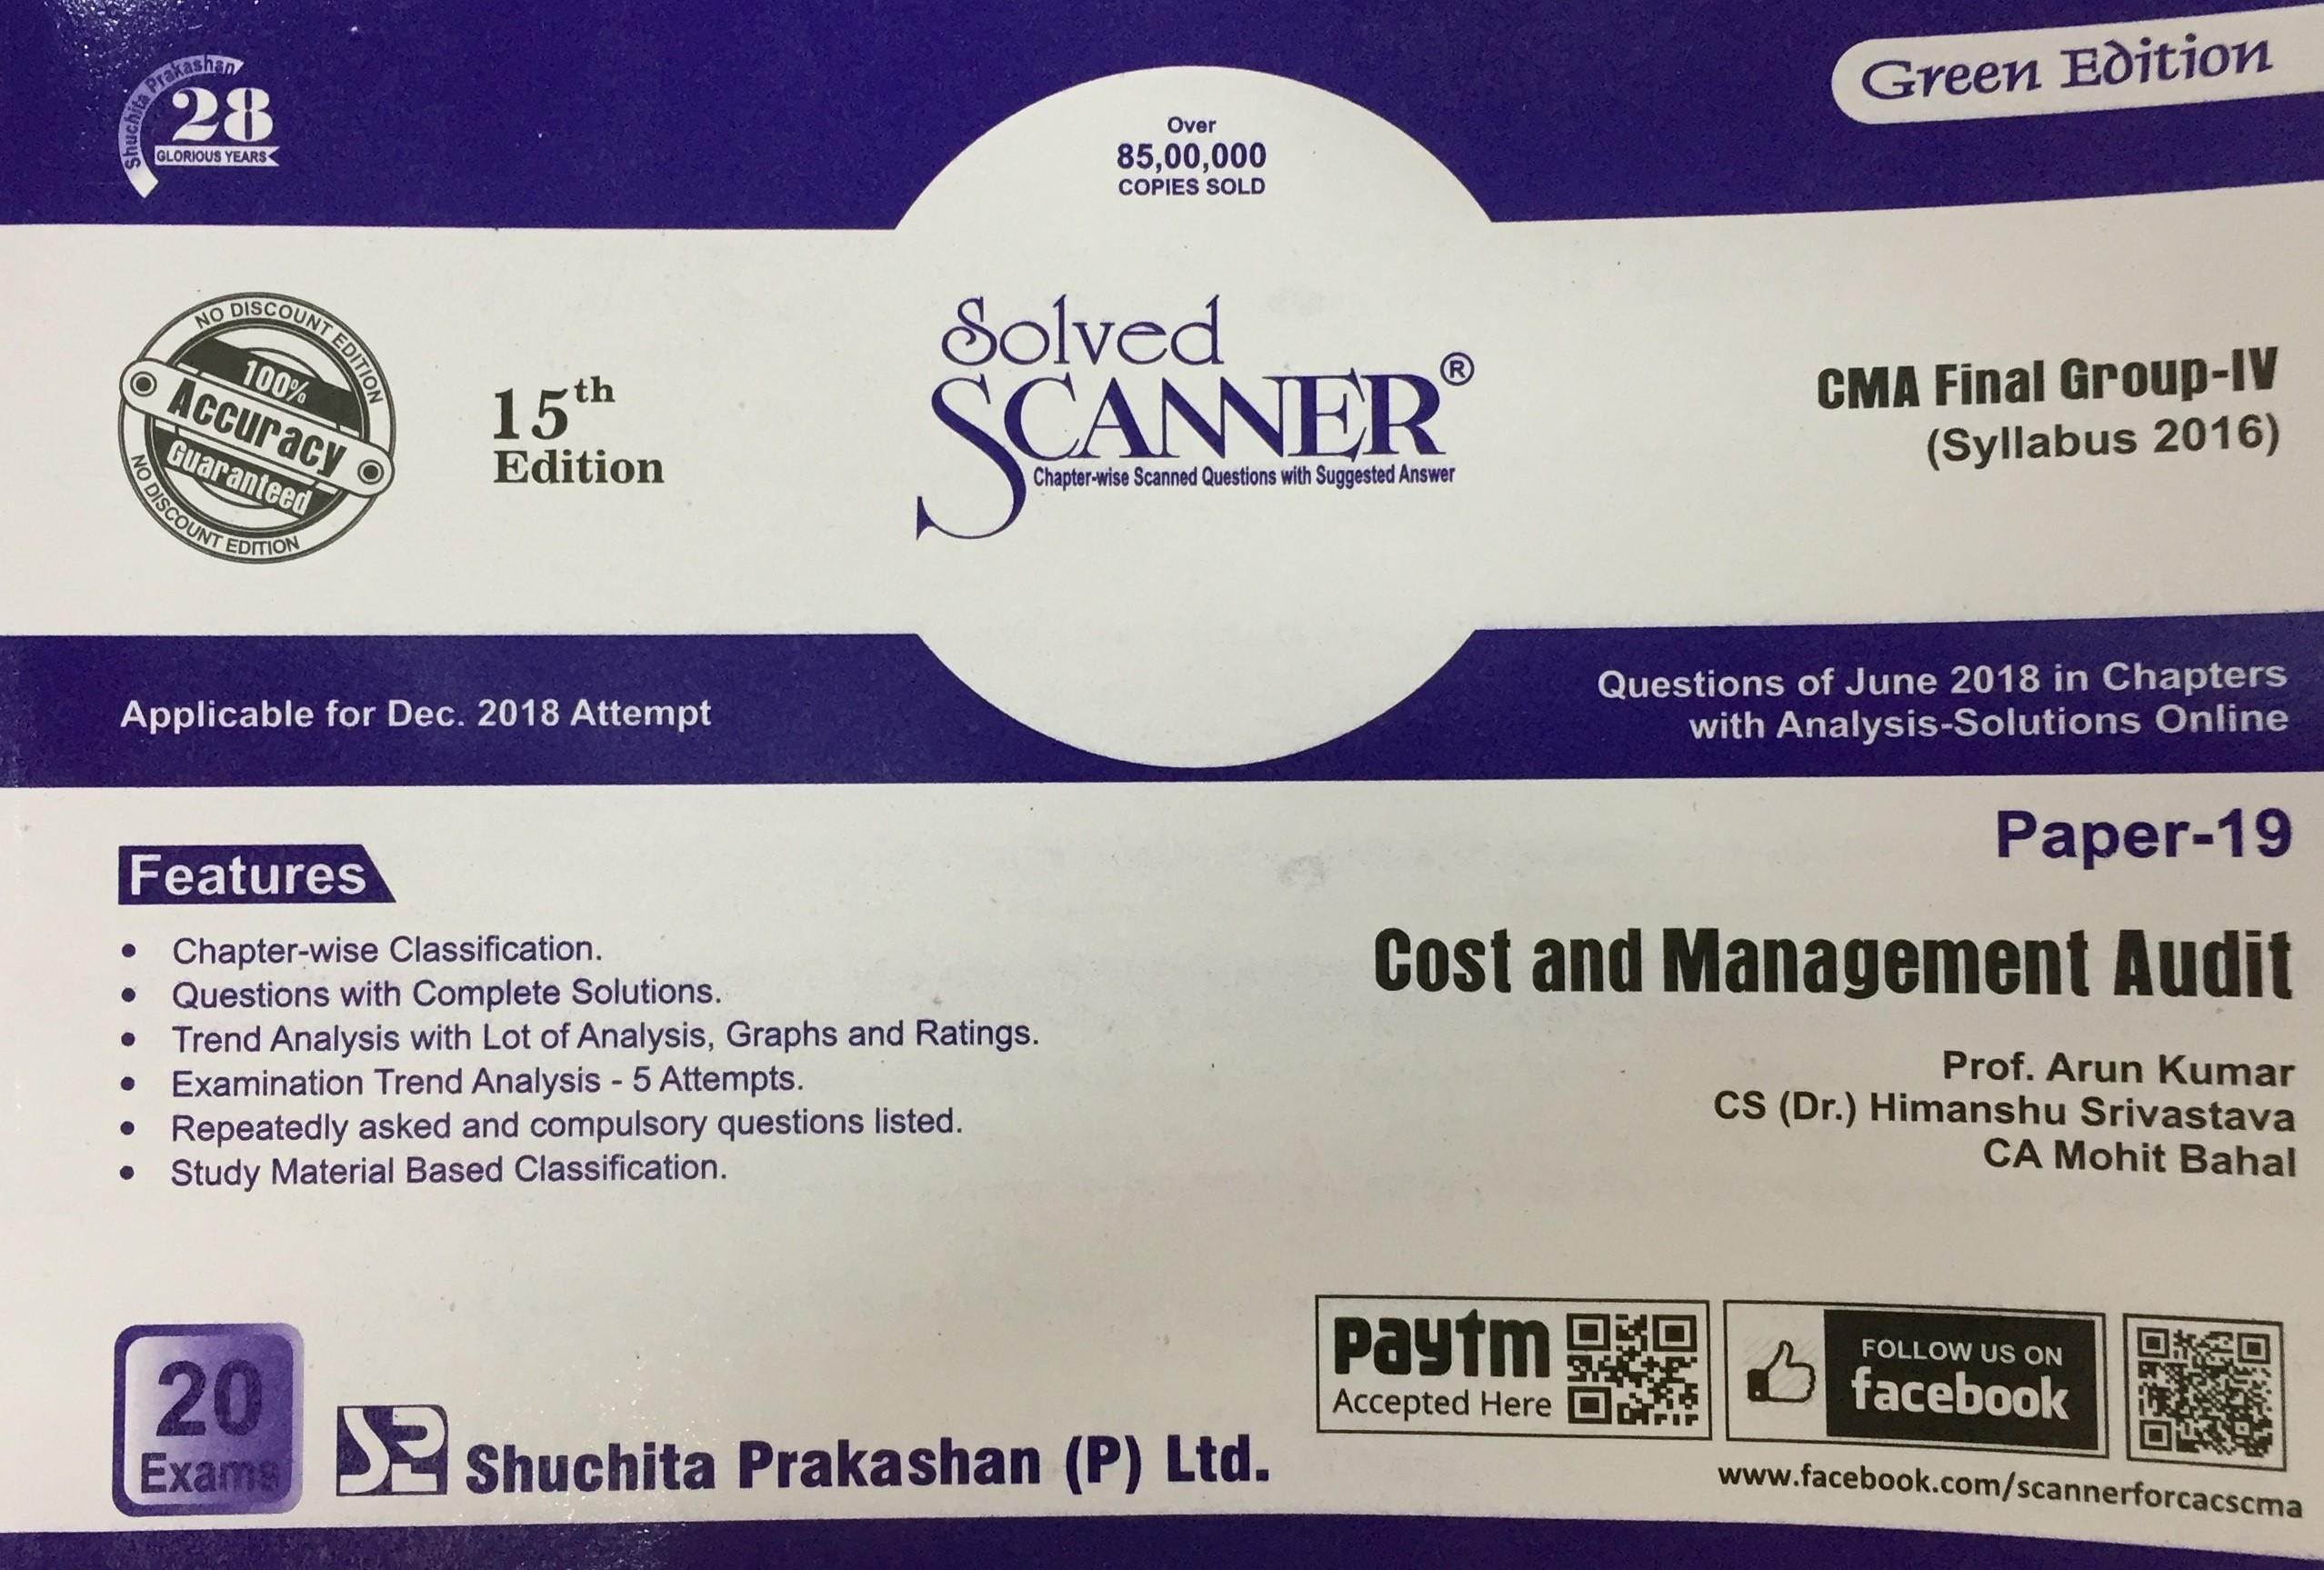 Shuchita Solved Scanner Cost and Management Audit for CMA Final Group IV Paper 19 New Syllabus for Dec 2018 by Prof. Arun Kumar and CA Mohit Bahal (Shuchita Prakashan) Edition 2018